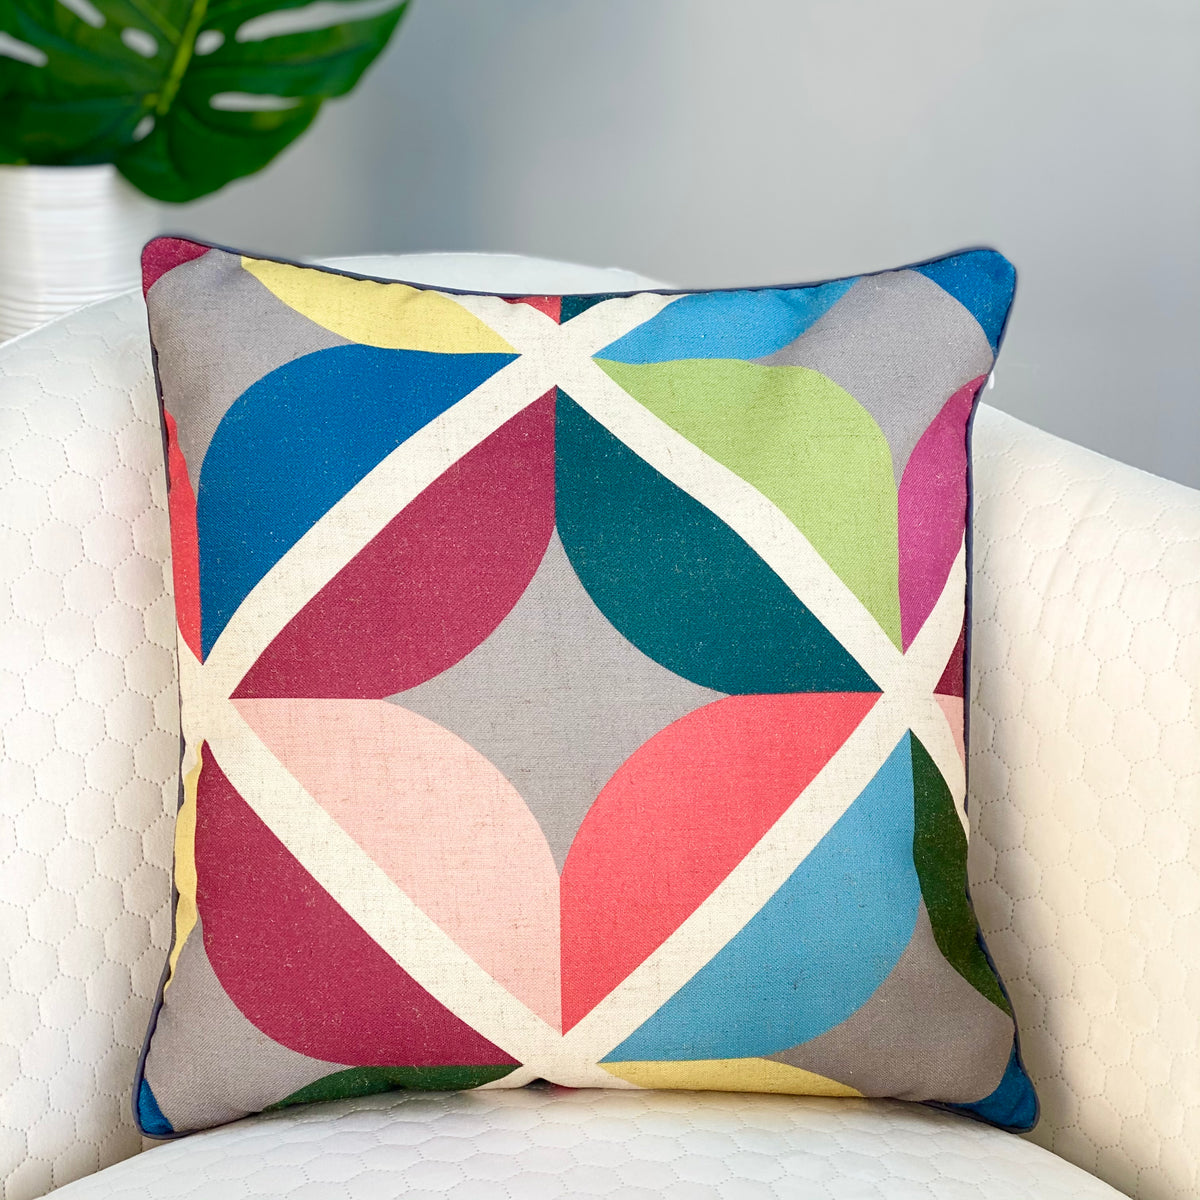 Aesthetic Colorful Leaves Pillow